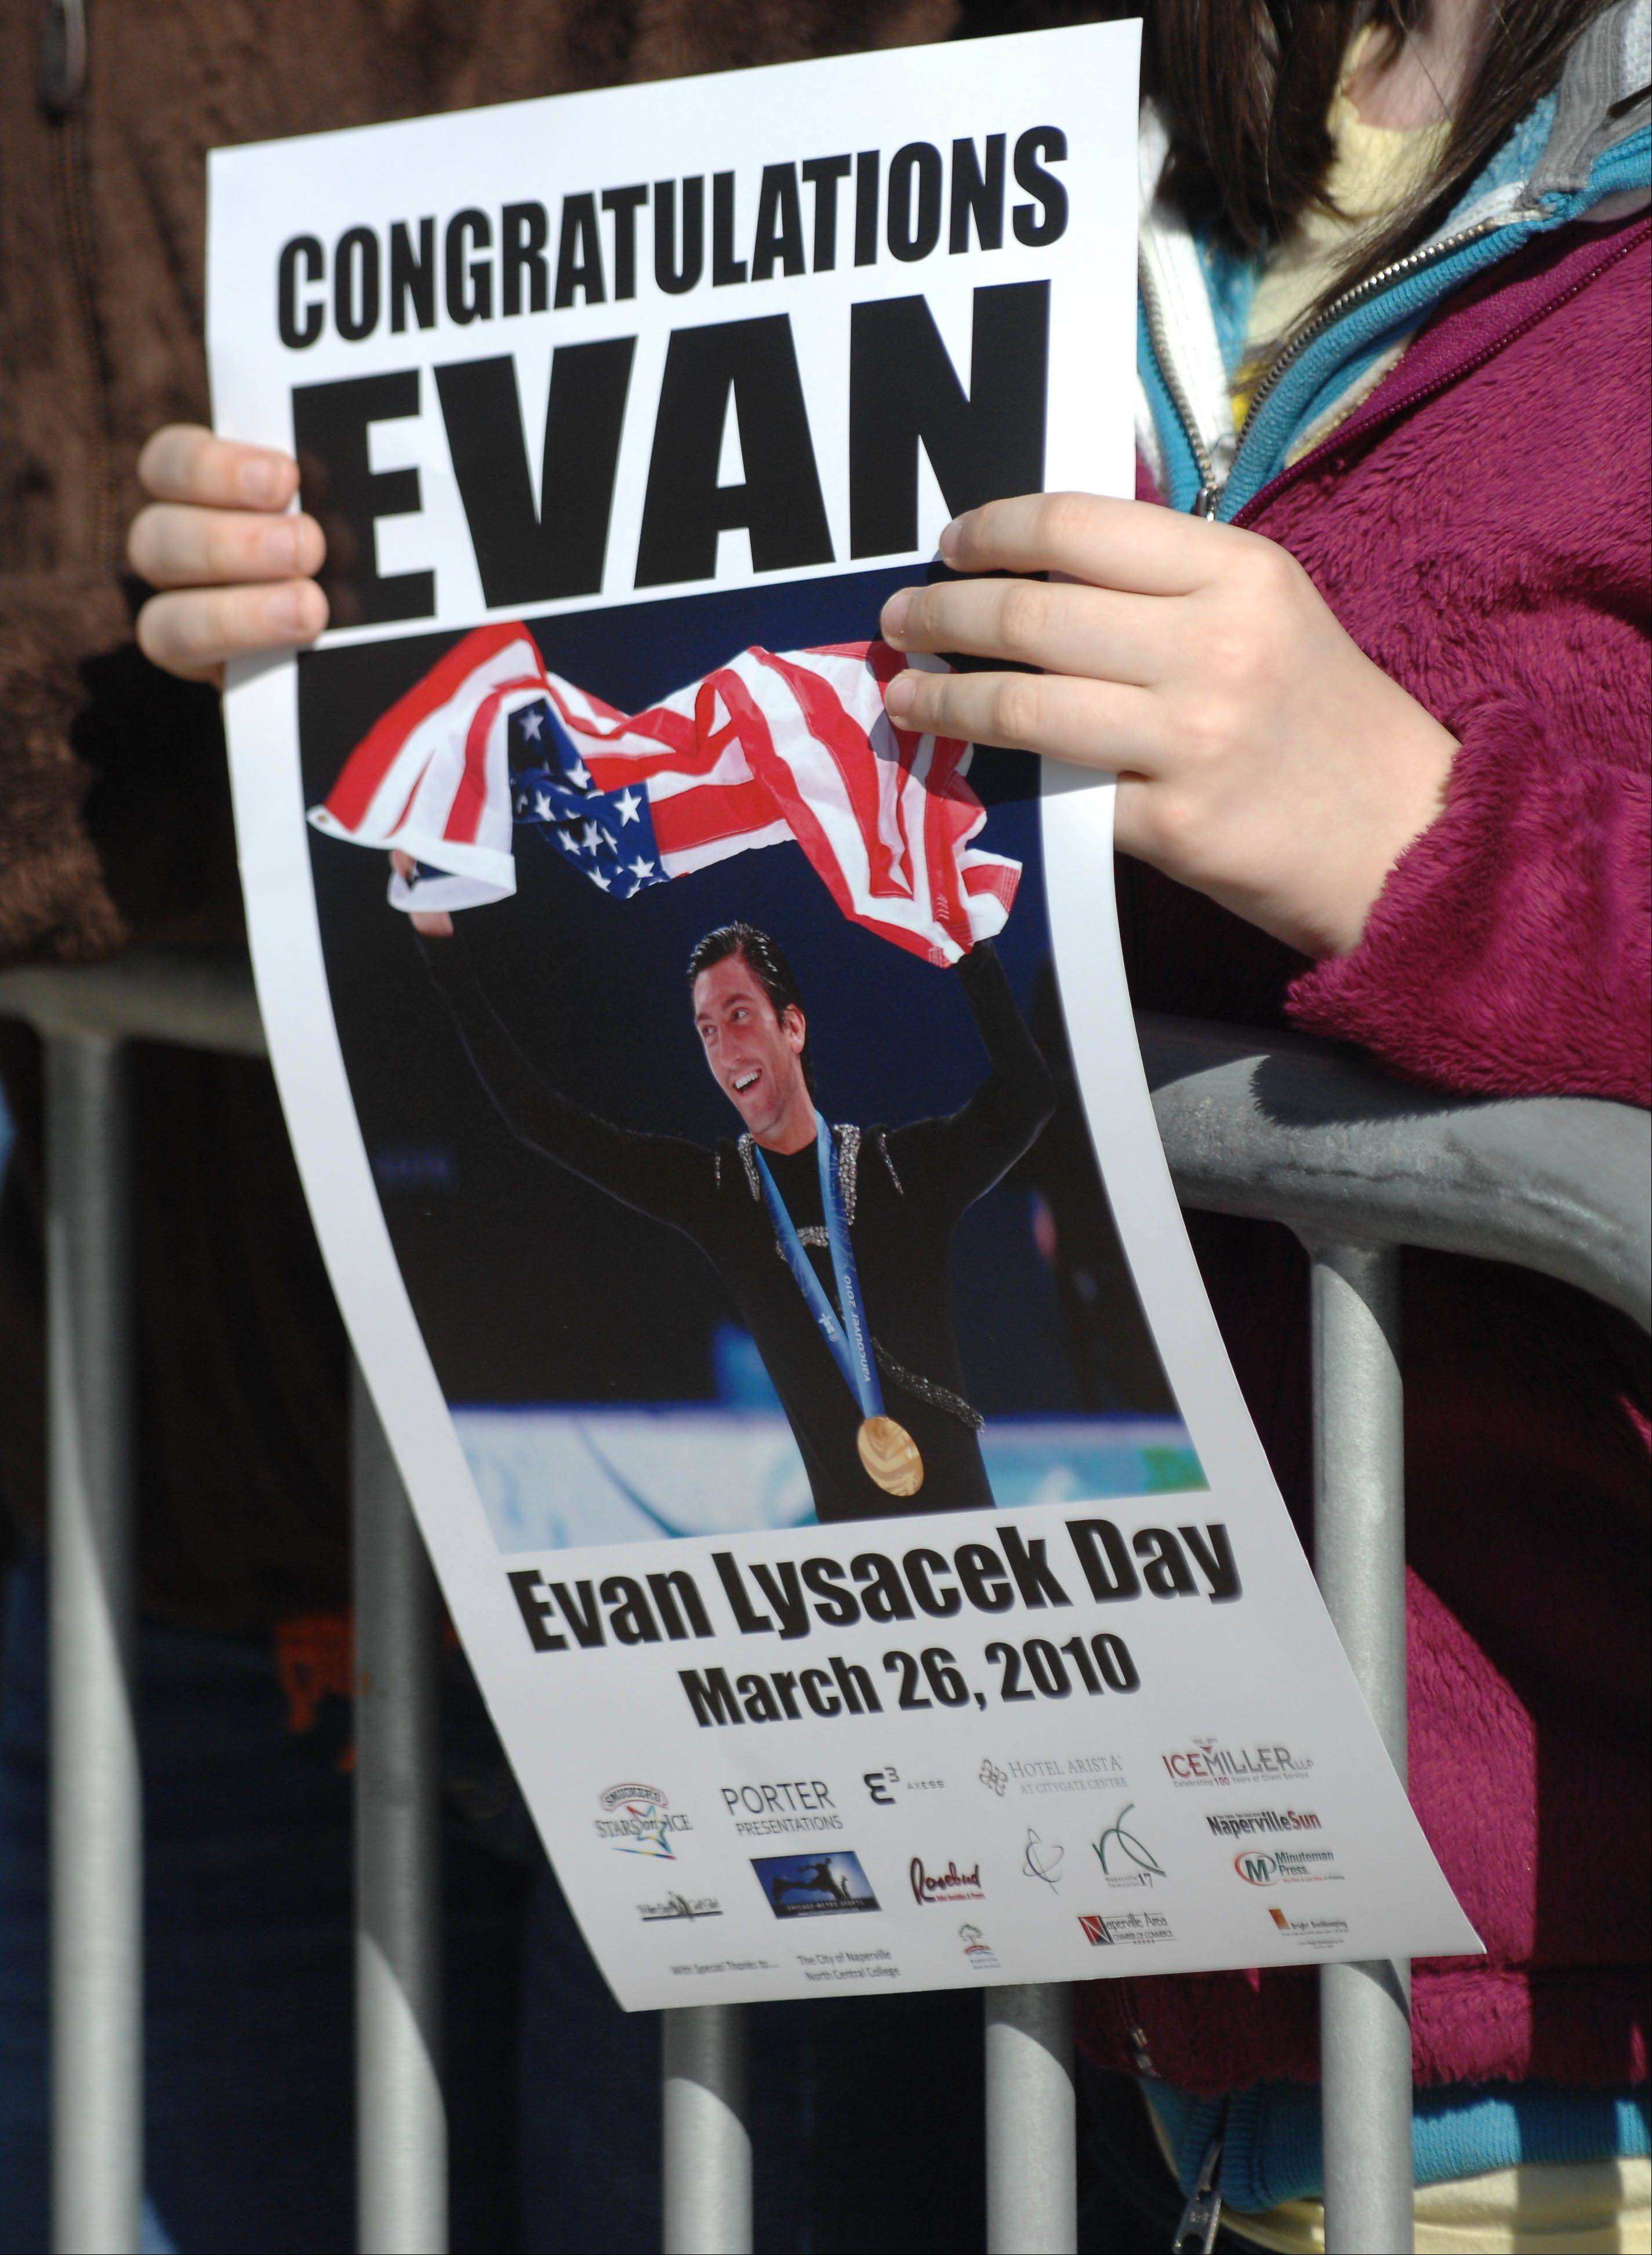 Evan Lysacek Day in Naperville was attended by 35,000 people excited to celebrate the figure skater's 2010 Olympic gold medal.